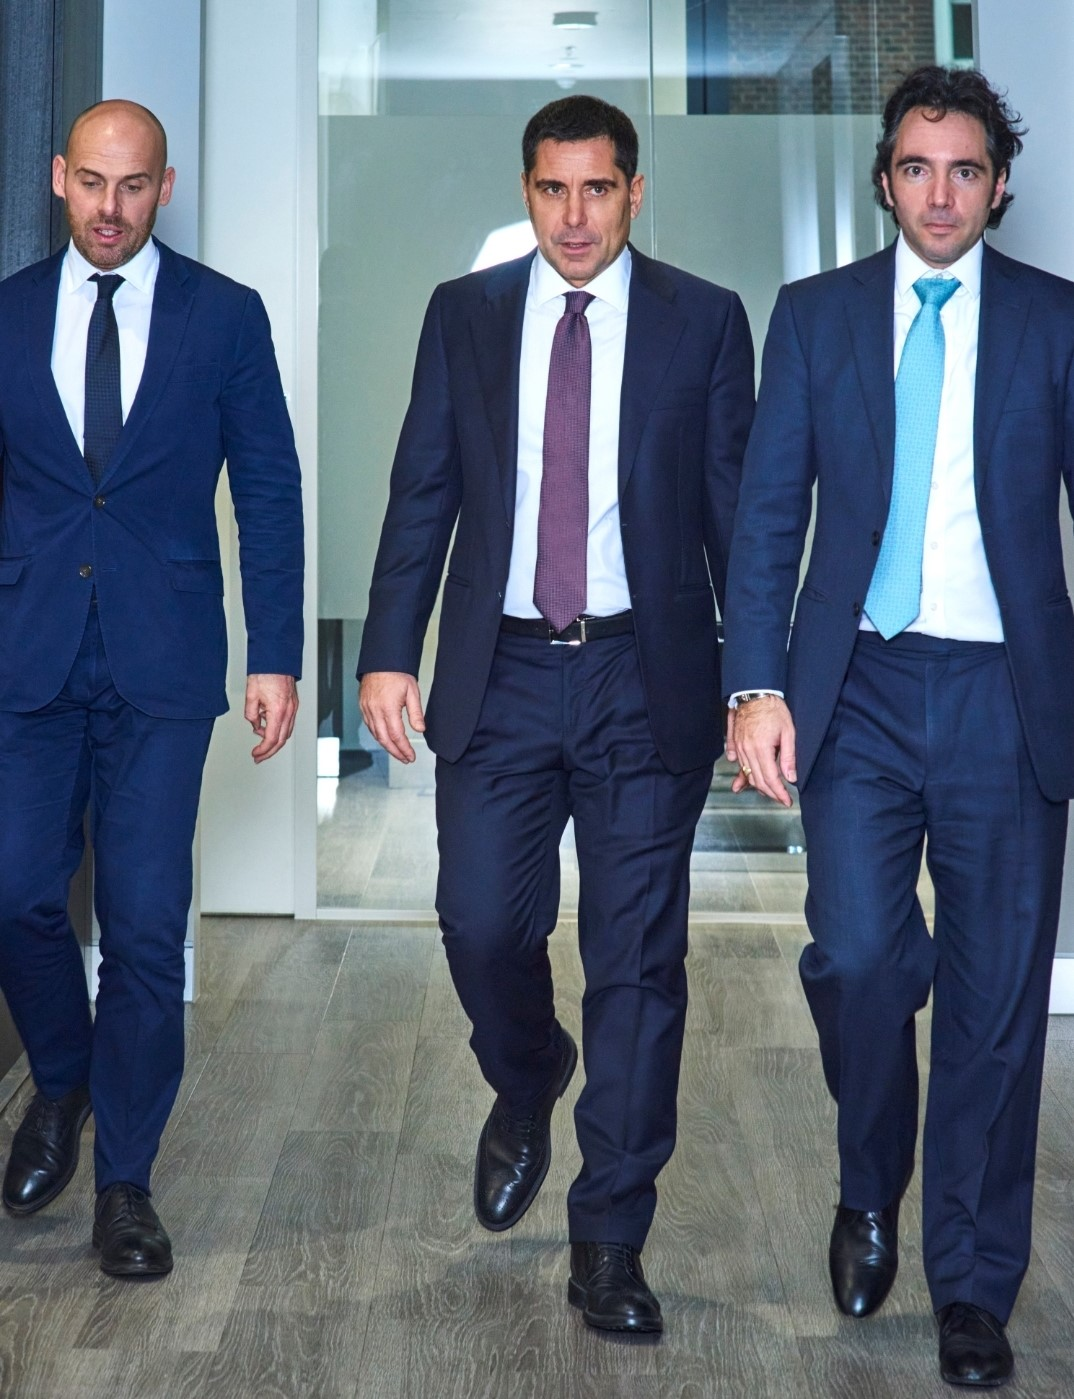 Riccardo Silva at the Silva International London office